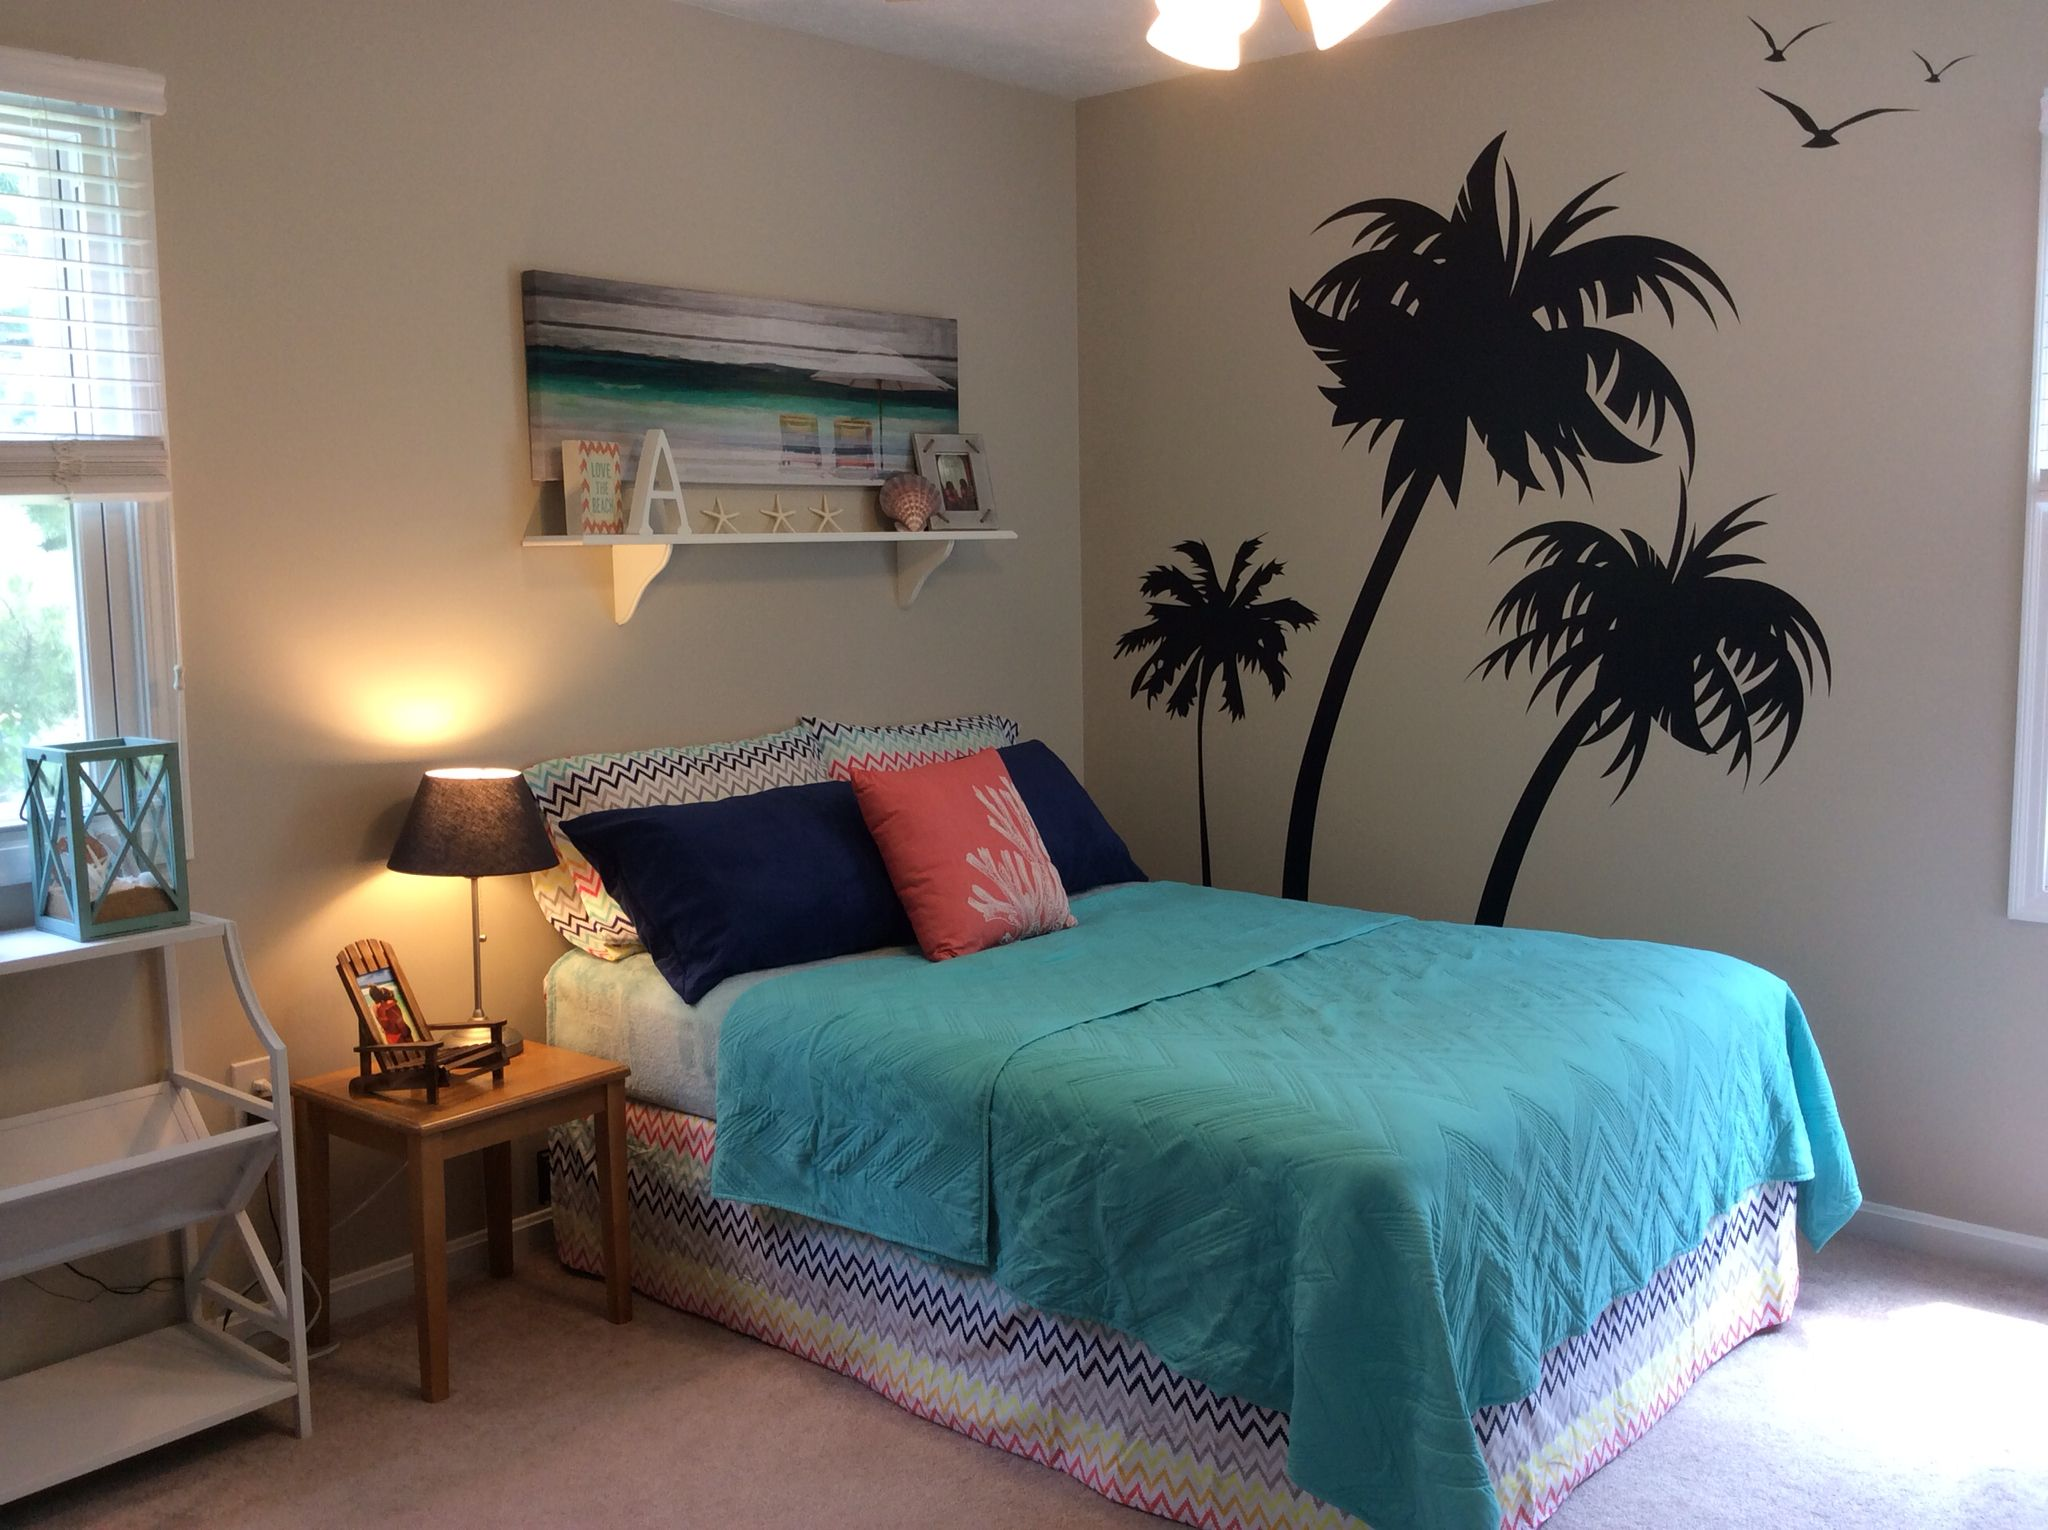 Teen Themed Rooms Room Update For Teen Girl Beach Theme With Lots Of